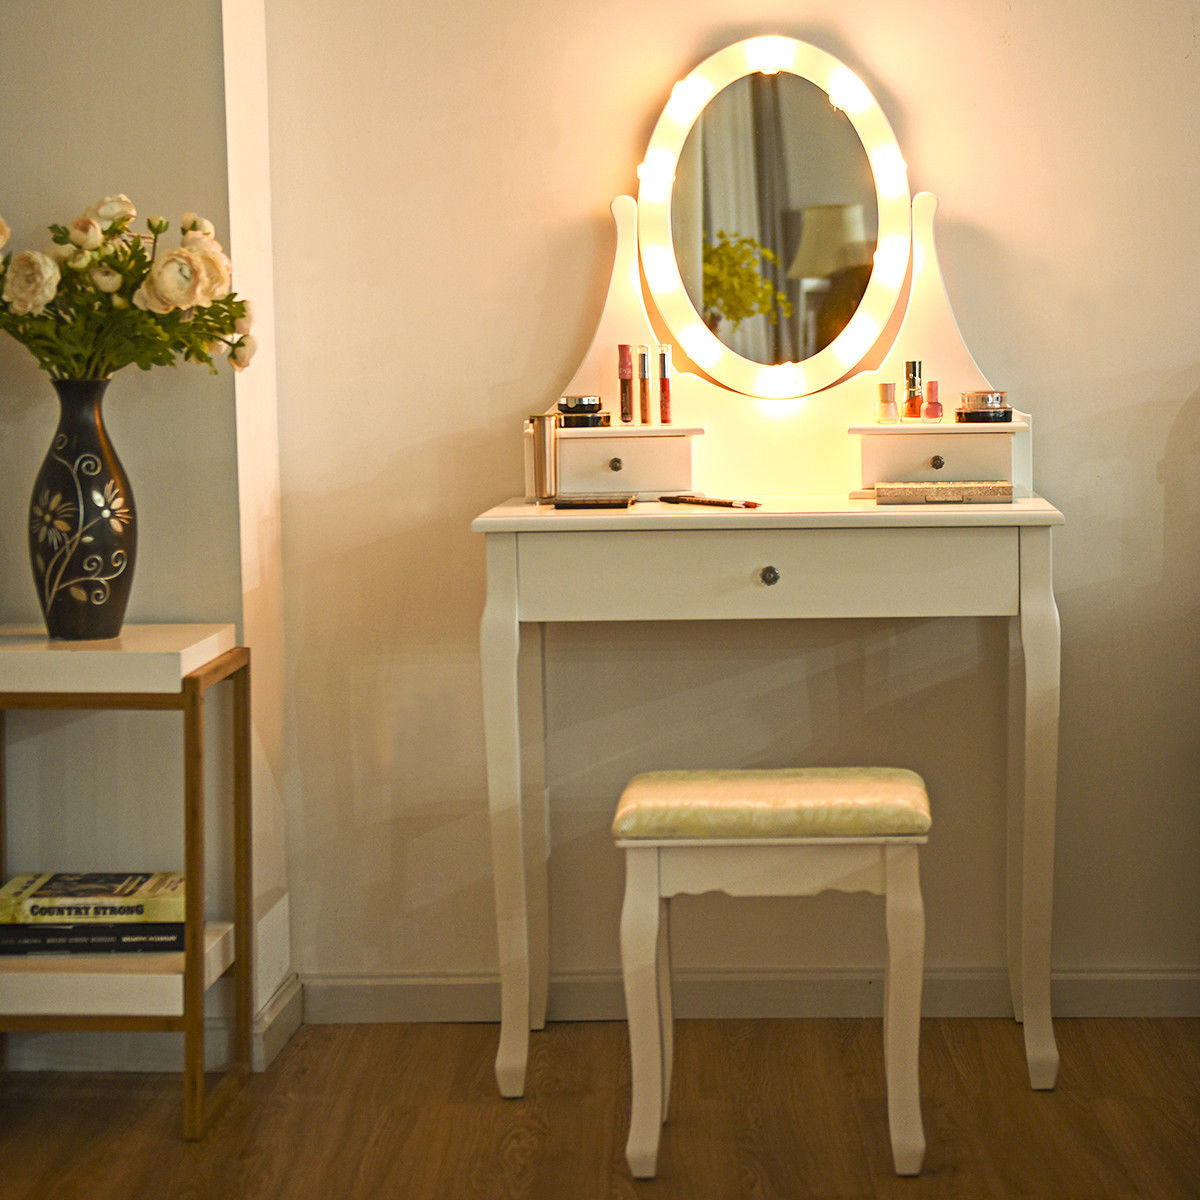 Gymax 3 Drawers Vanity Makeup Dressing Table Stool Set Lighted Mirror W/10  LED Bulbs